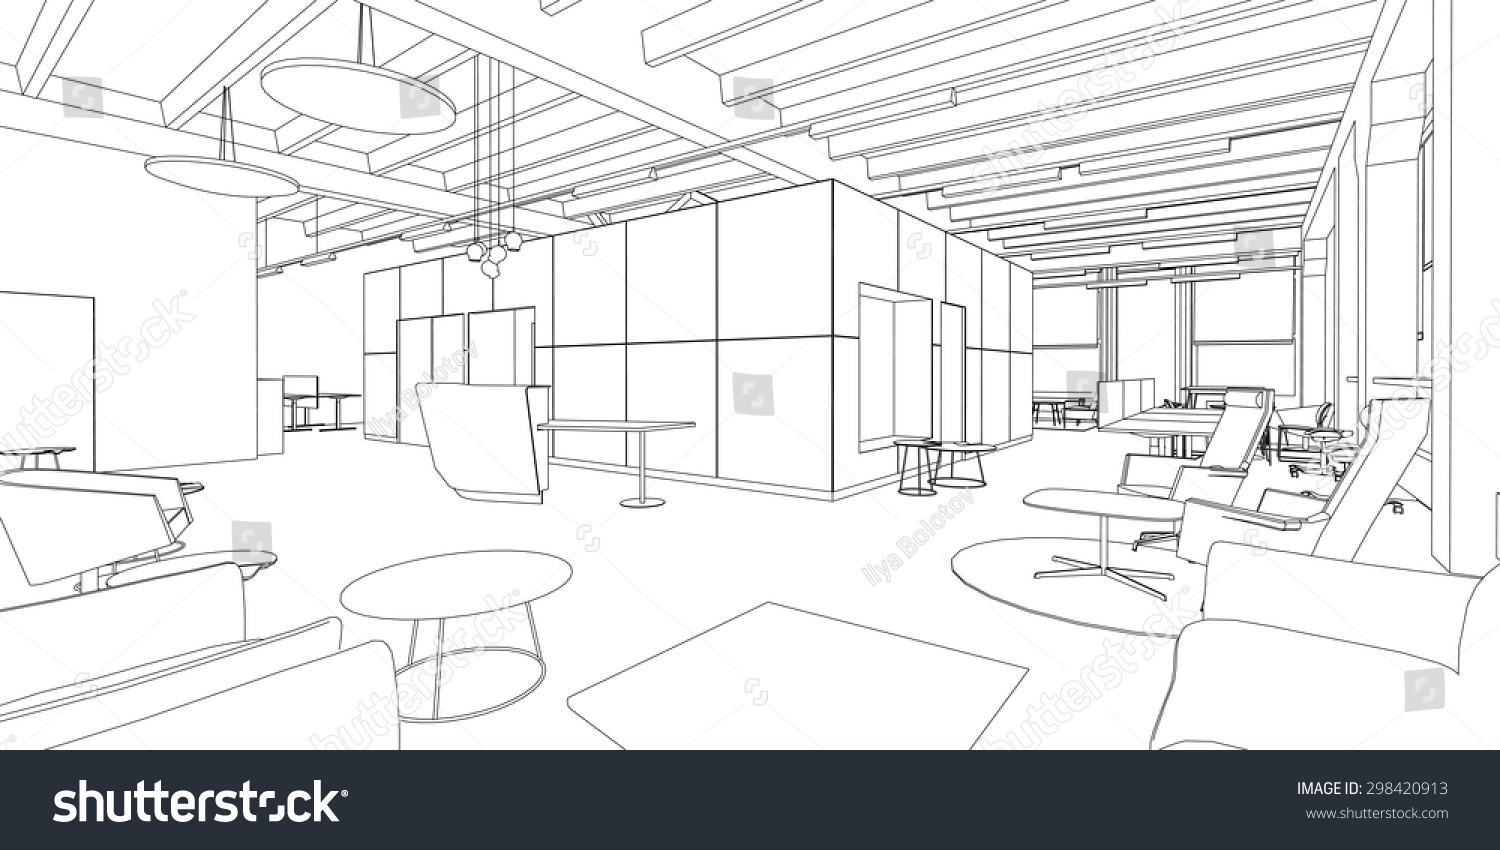 Vector Drawing Lines Excel : Line drawing office interior on white stock vector